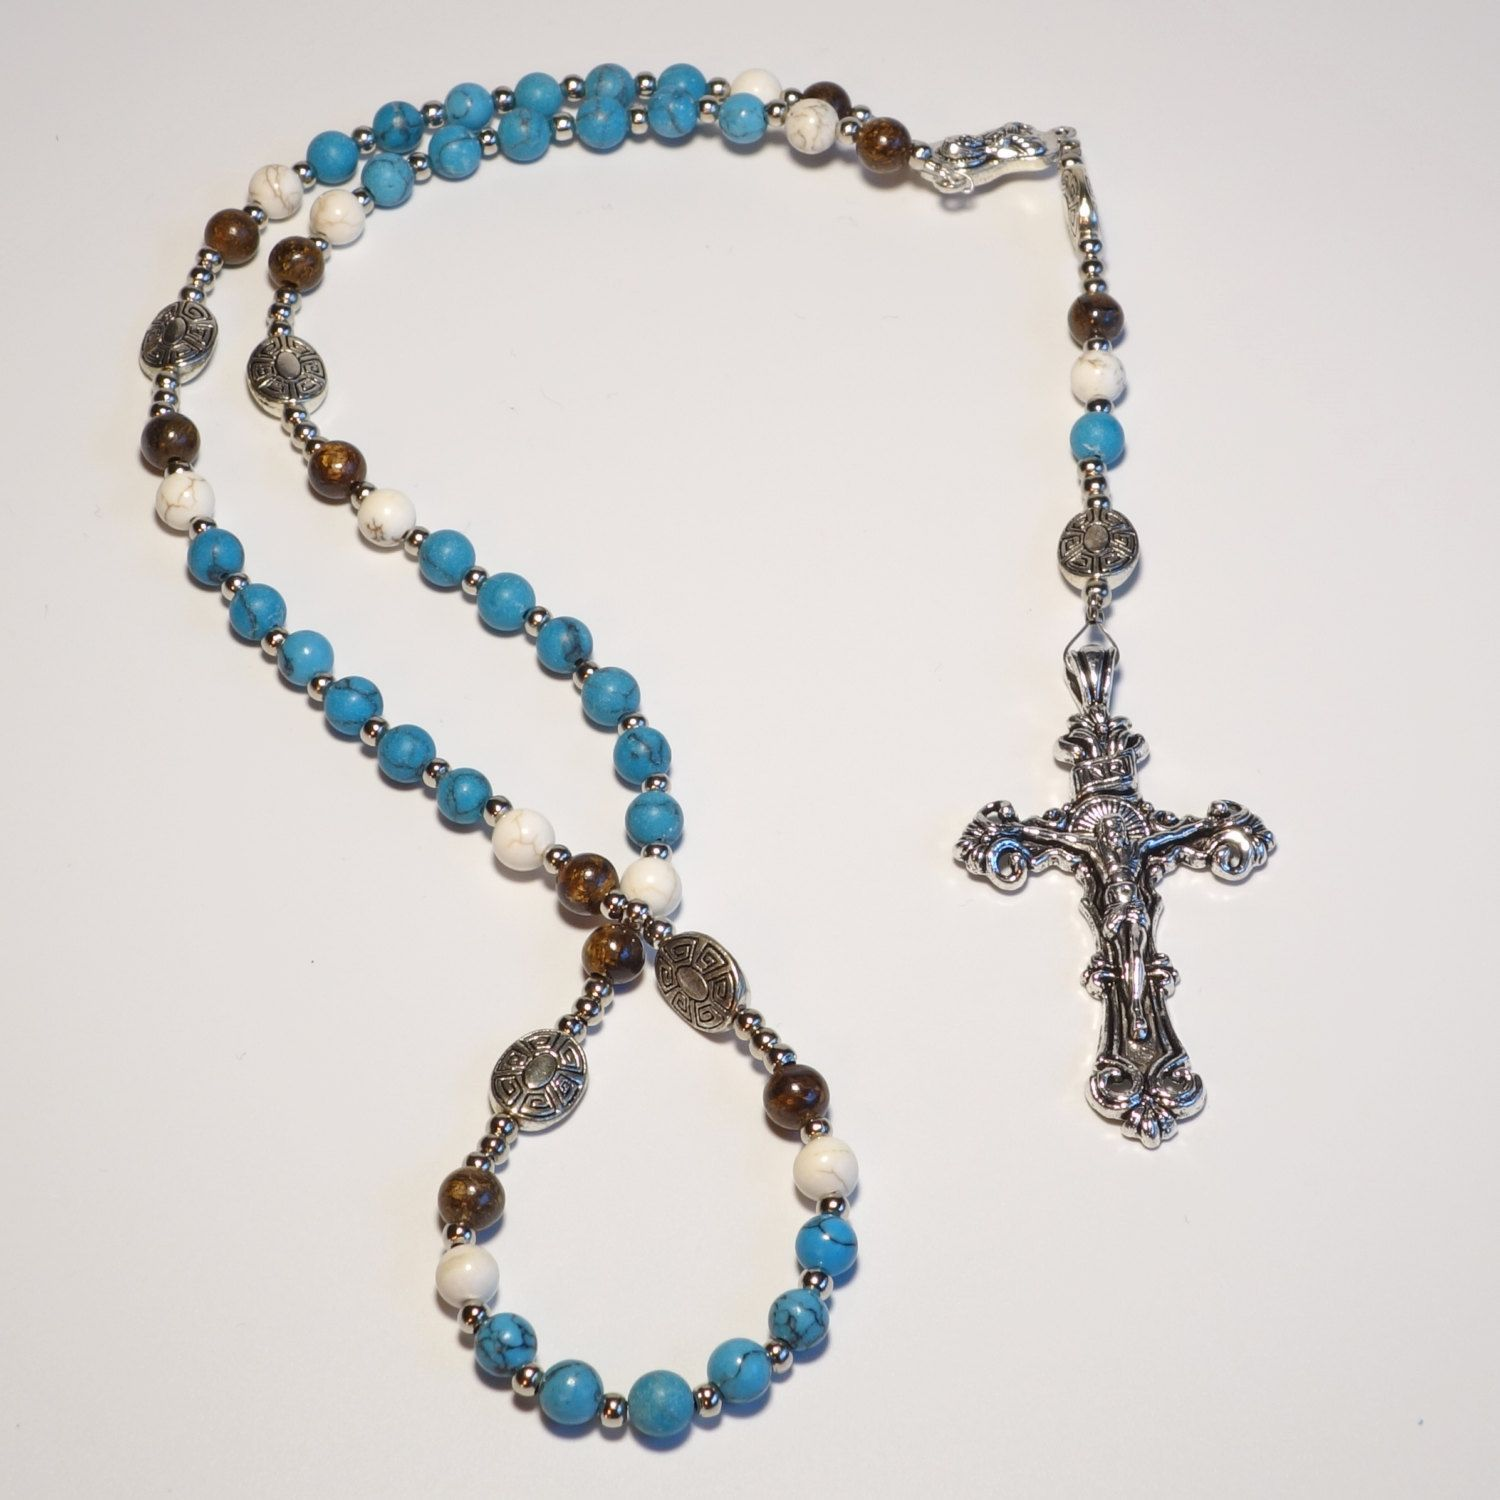 Handcrafted Catholic Saints Rosary Necklace Beaded Chain - Turquoise/White/Brown by DungleBees on Etsy